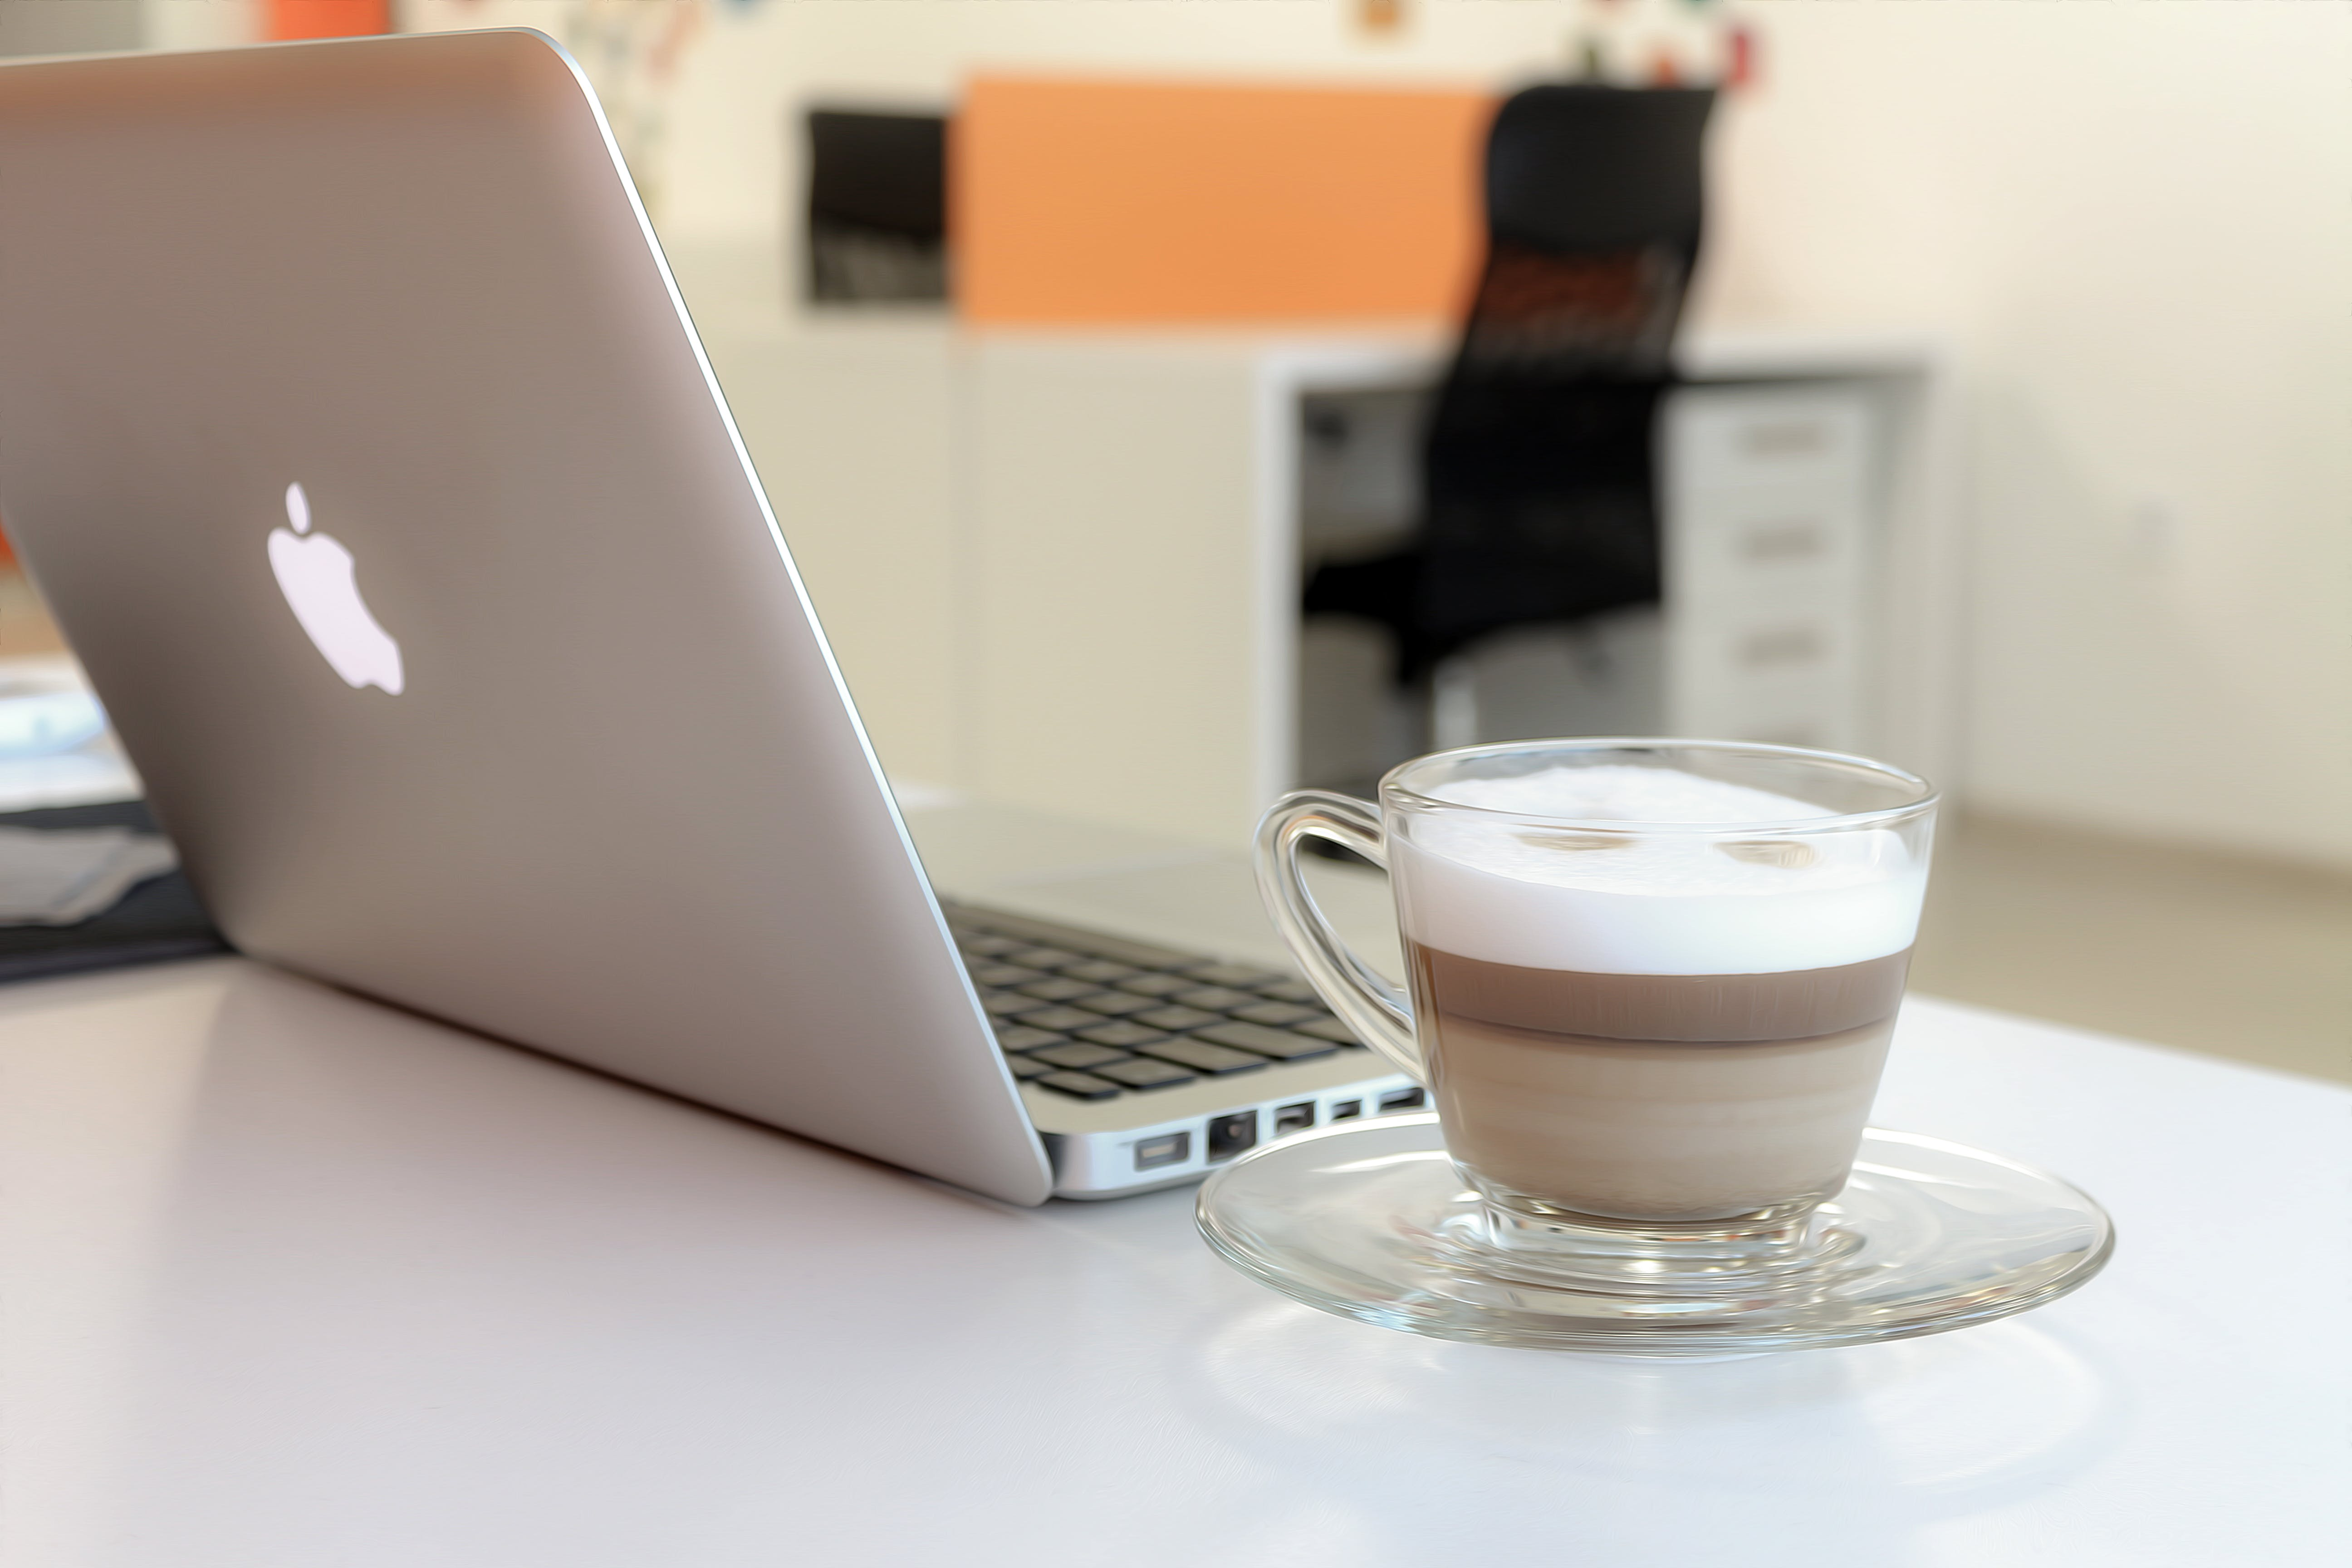 Macbook Pro Besides Clear Glass Mug